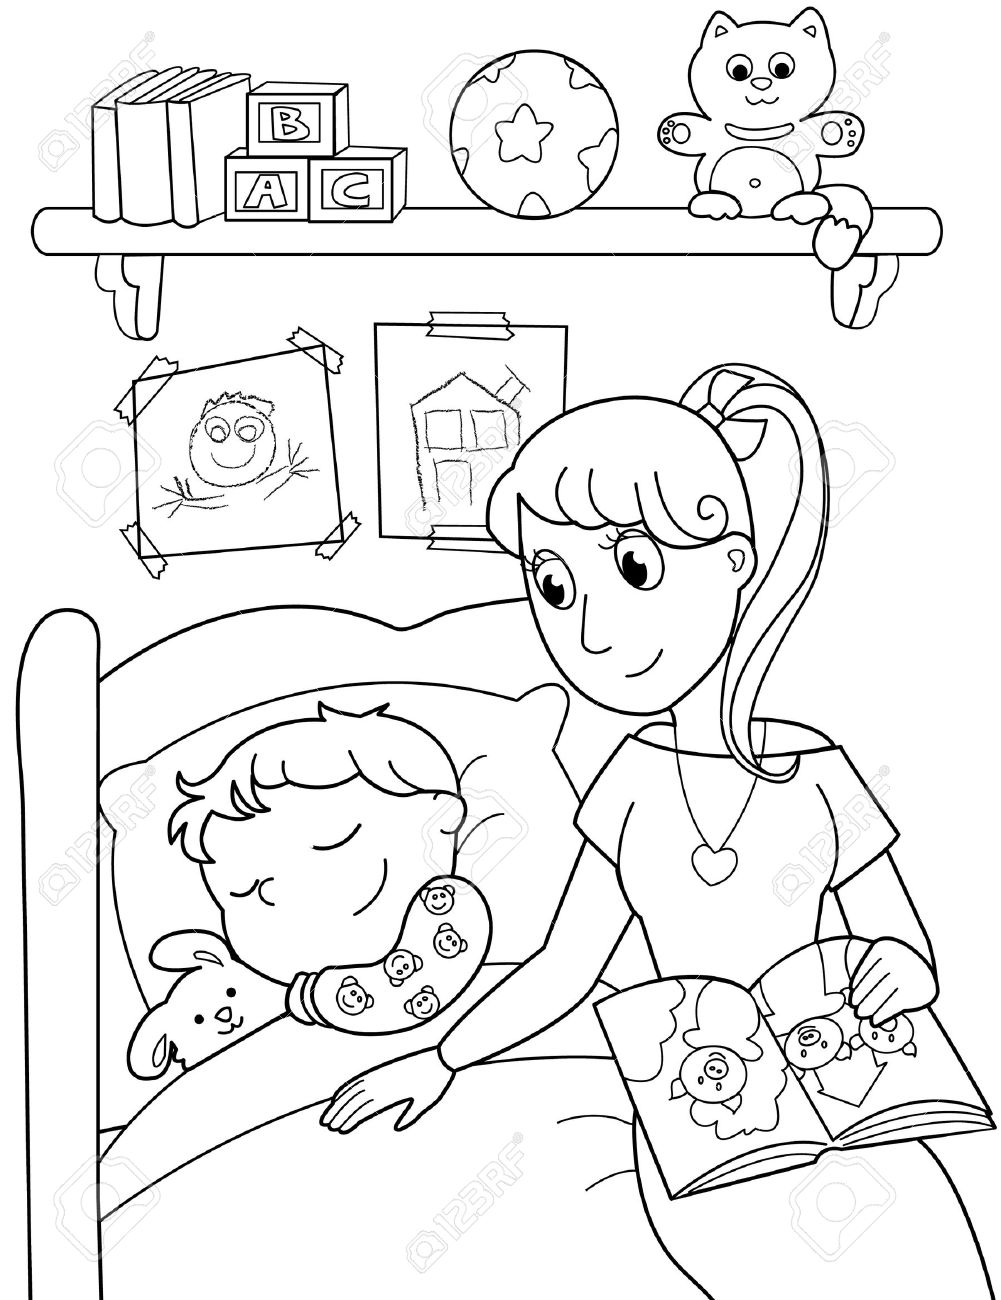 Cute child sleeping in bed with mom. Black and white illustration. Stock Vector - 10988138